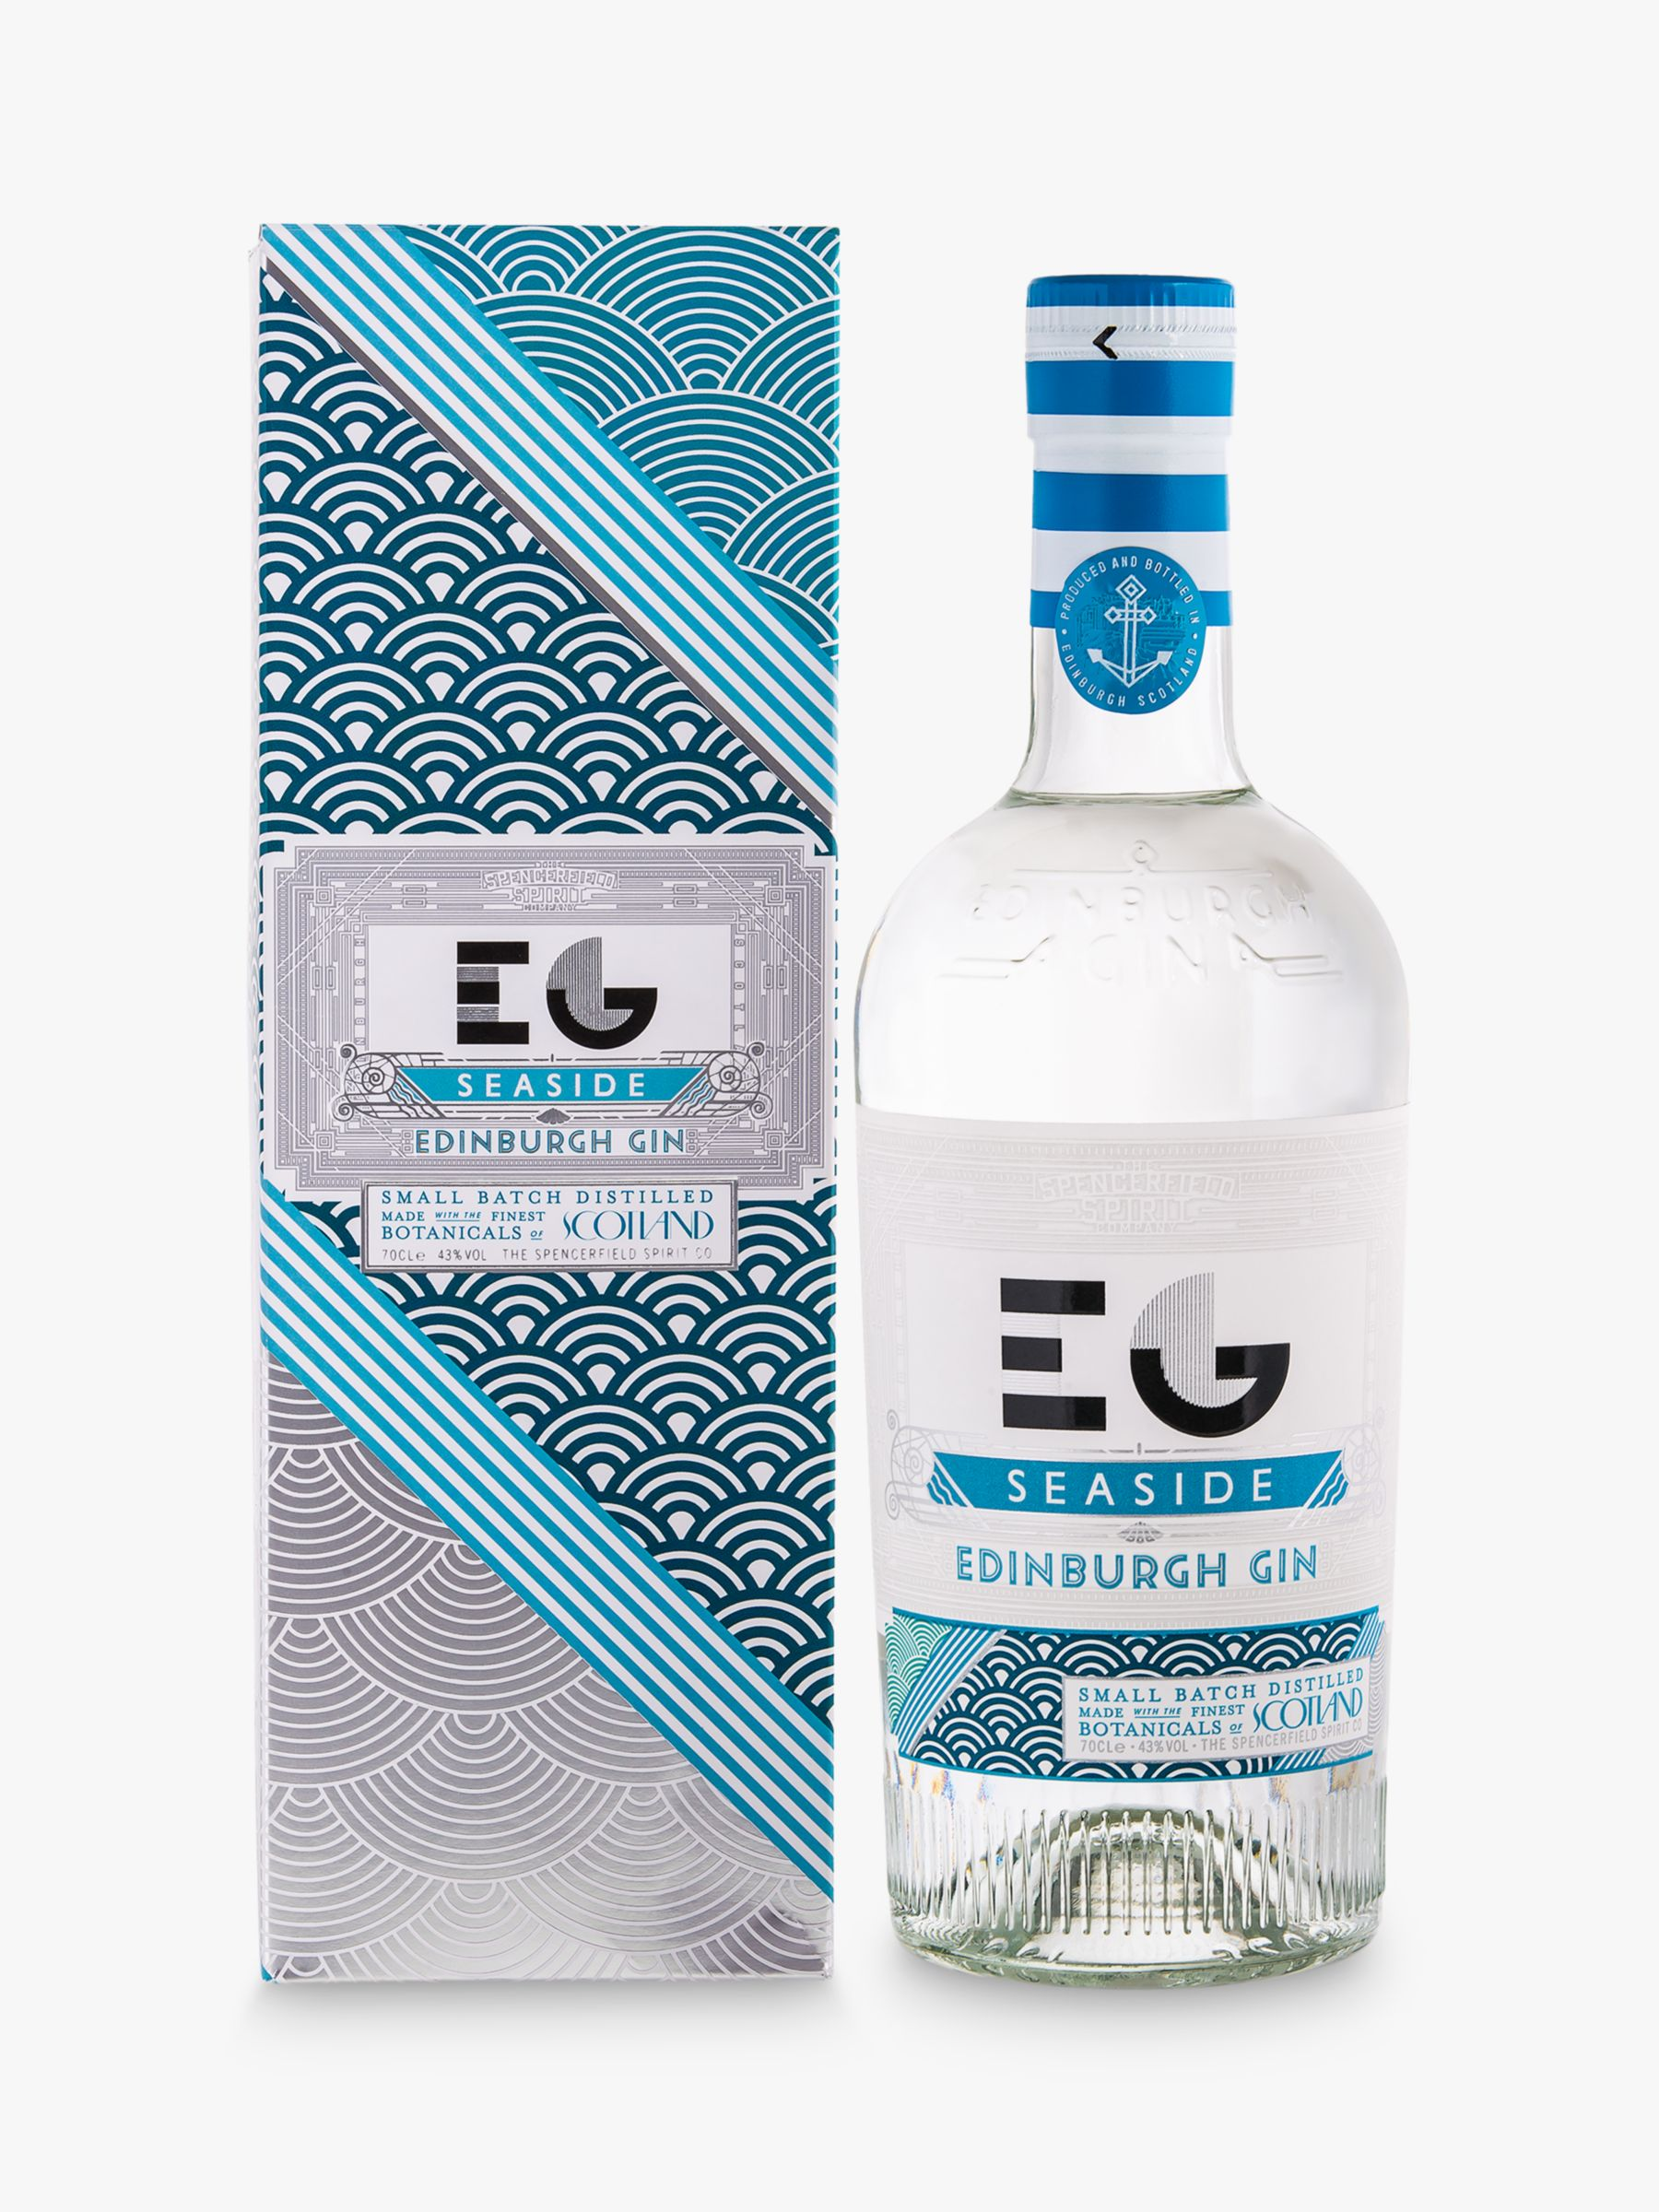 Edinburgh Gin Edinburgh Gin 'Seaside', 70cl